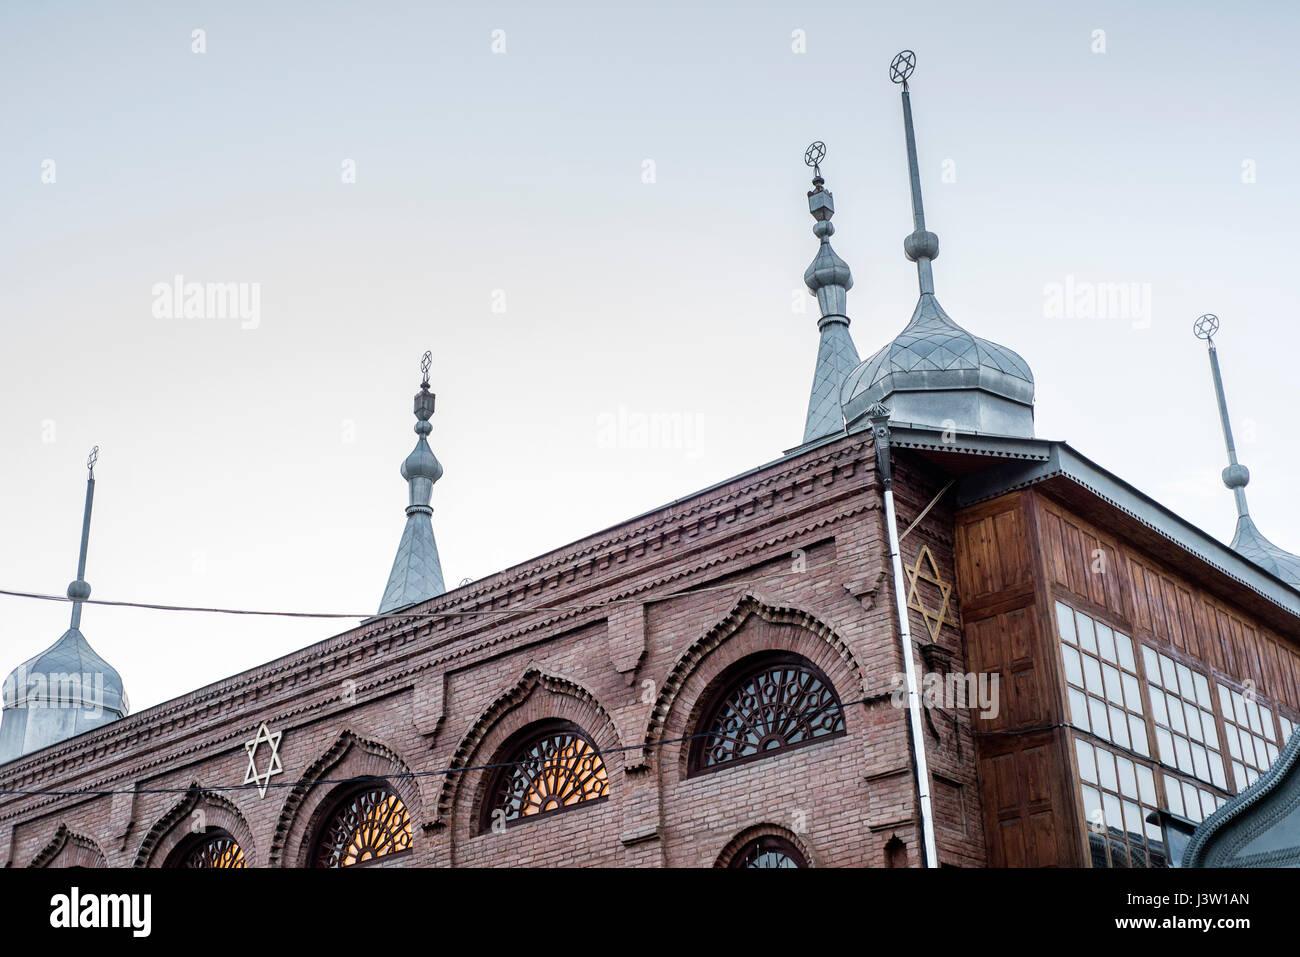 Six-domed Synagogue in Qırmızı Qəsəbə, or Red Town, Quba district of Azerbaijan. Qırmızı Qəsəbə is a biggest compact - Stock Image